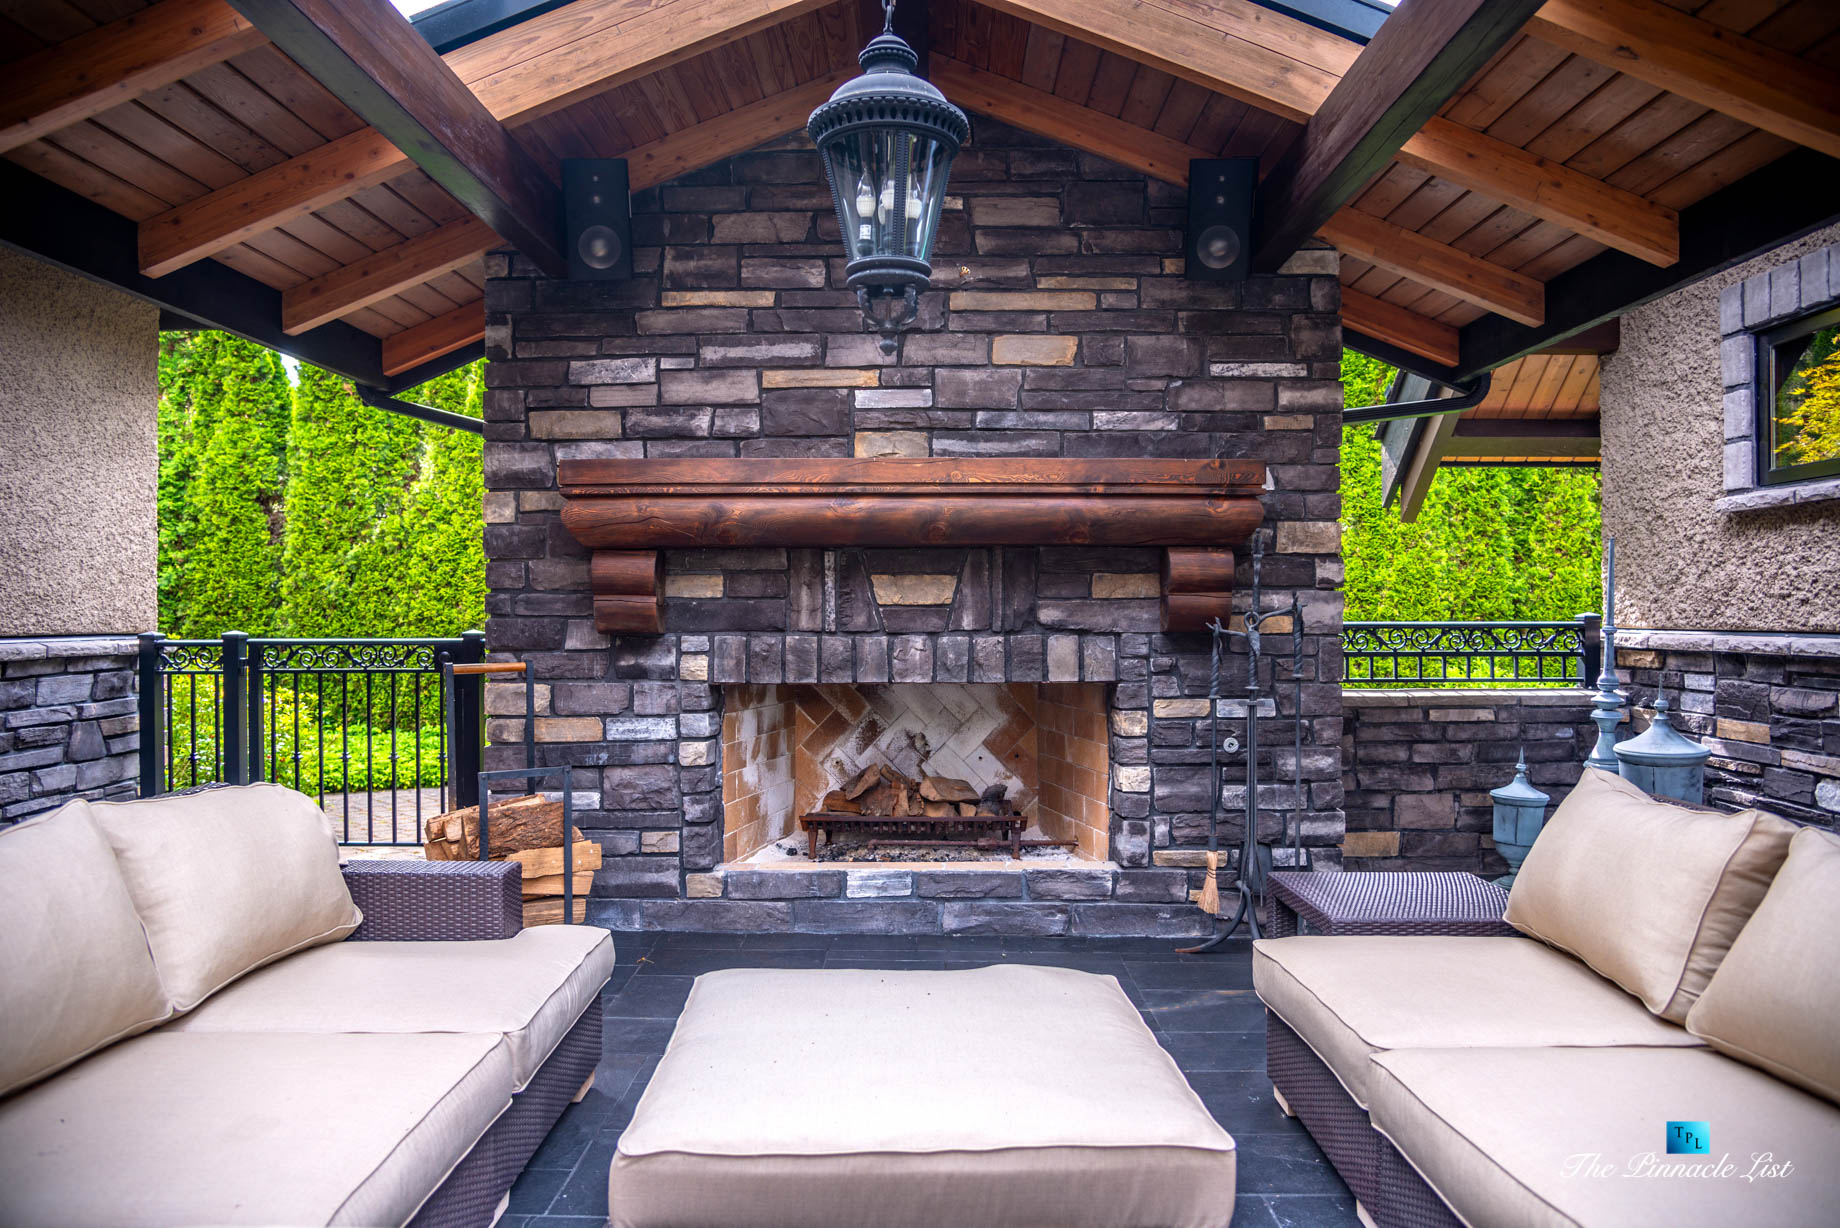 3053 Anmore Creek Way, Anmore, BC, Canada – Backyard Outdoor Wood Fireplace Covered Deck – Luxury Real Estate – Greater Vancouver Home